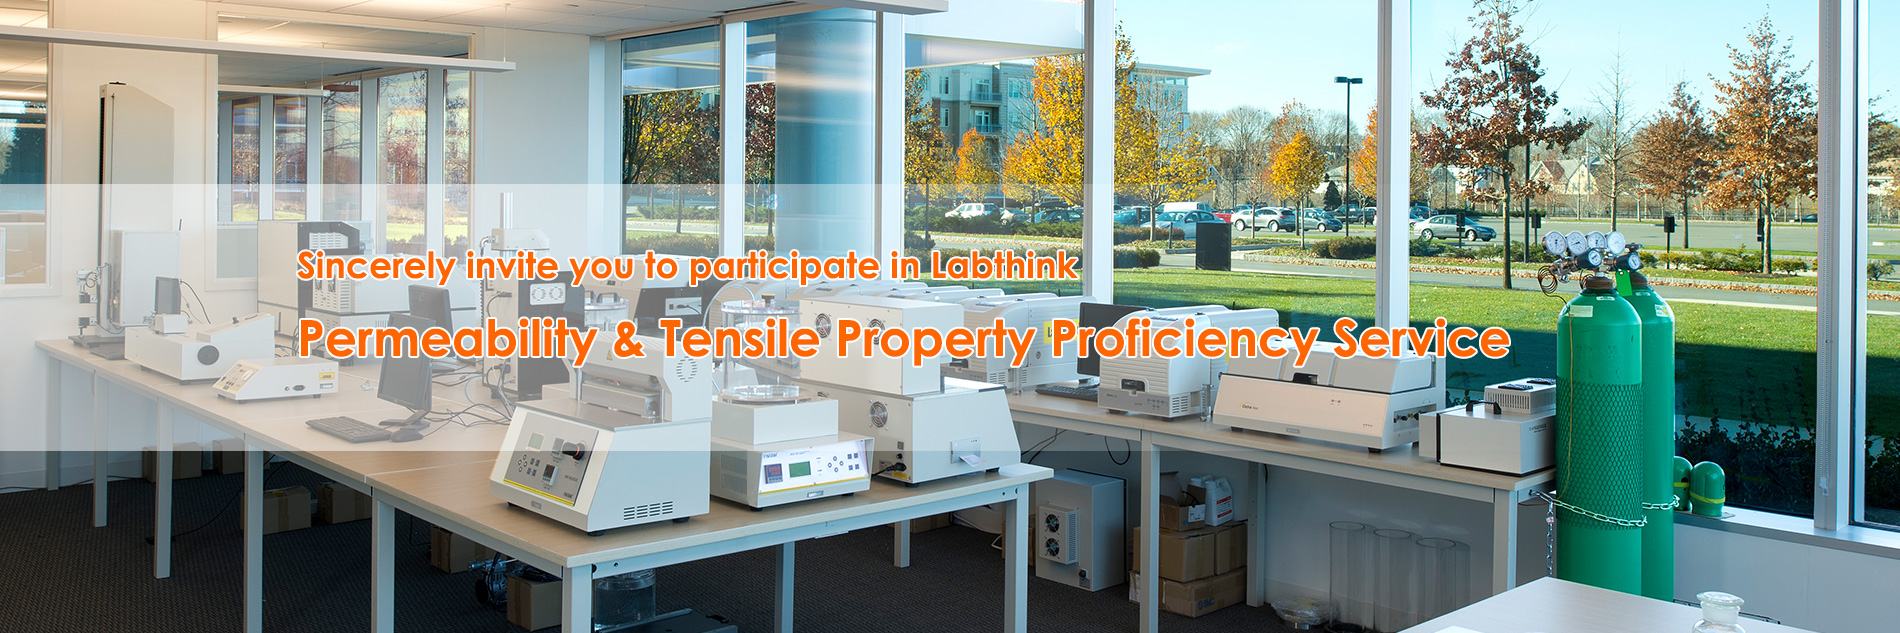 Labthink Permeability & Tensile Property Proficiency Service